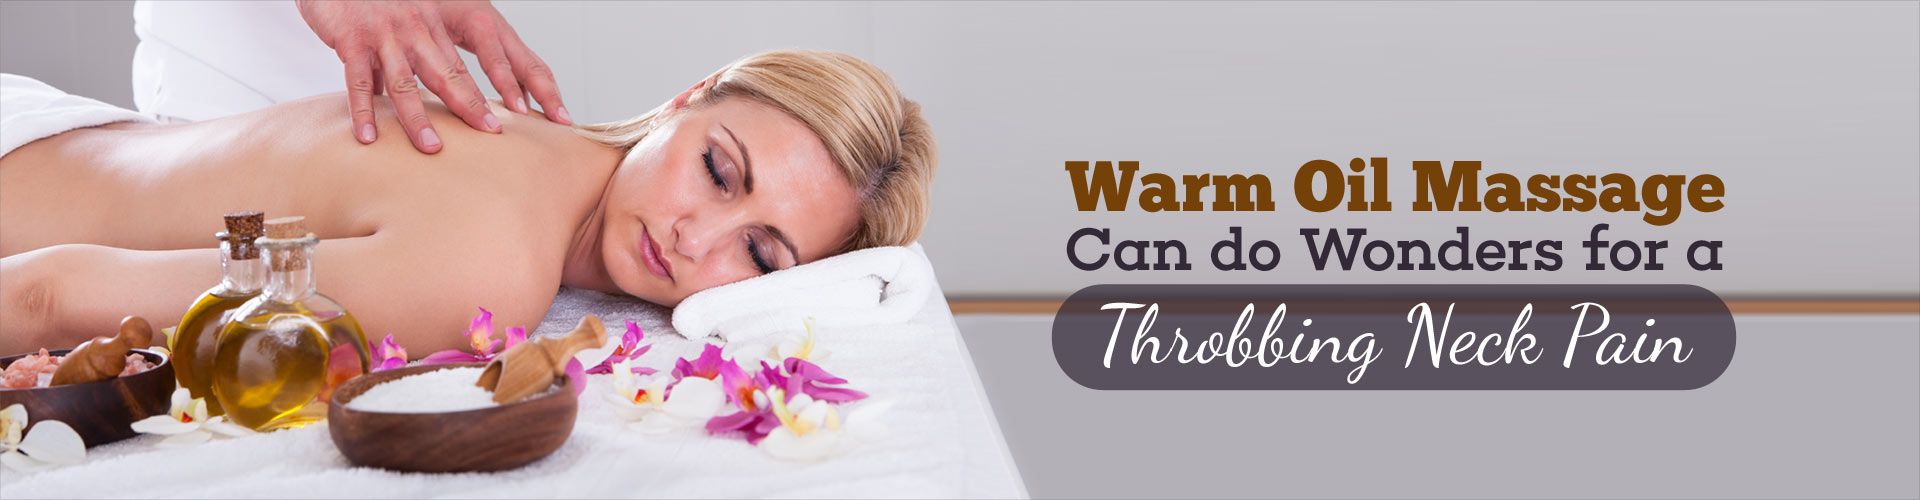 A Warm Oil Massage Can do Wonders for A Throbbing Neck Pain